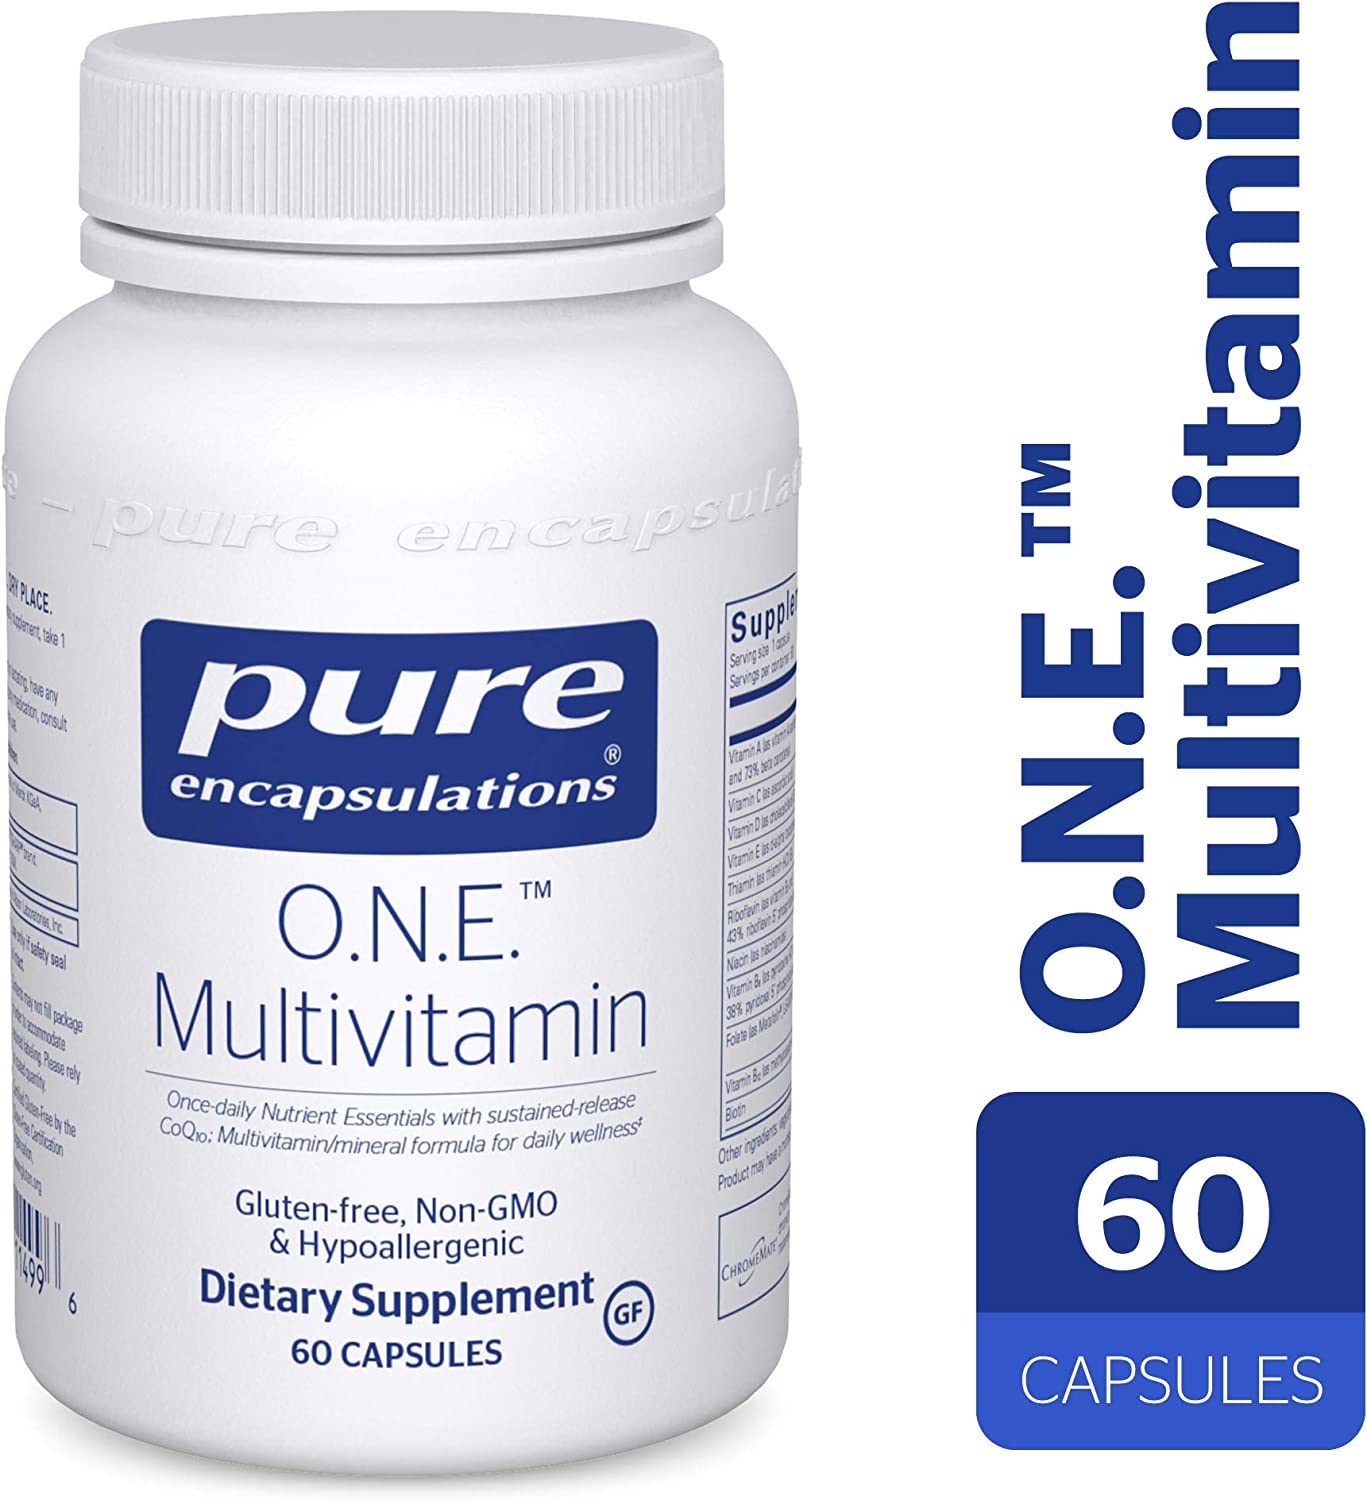 Pure Encapsulations – O.N.E. Multivitamin – Once Daily Nutrient Essentials with Metafolin L-5-MTHF and Sustained Release CoQ10 – Hypoallergenic Dietary Supplement – 60 Capsules